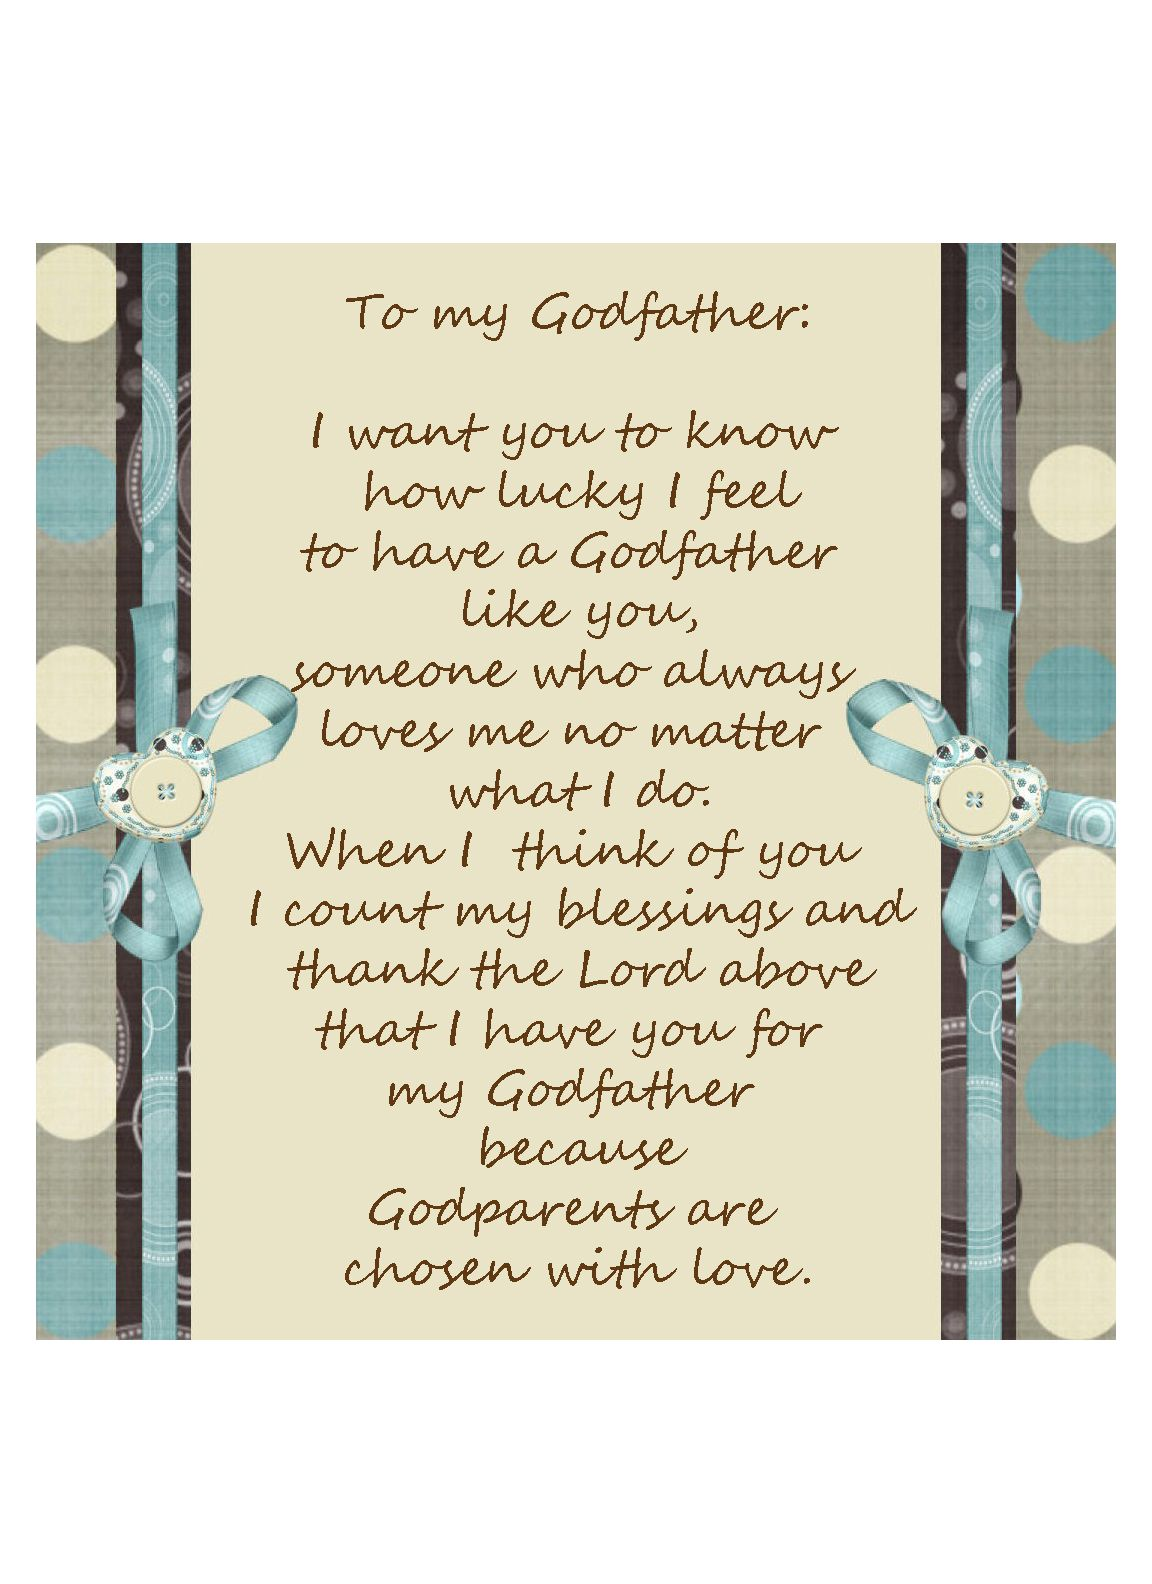 Godfather picture frame insert gift idea godchild gifts godfather picture frame insert gift idea jeuxipadfo Image collections